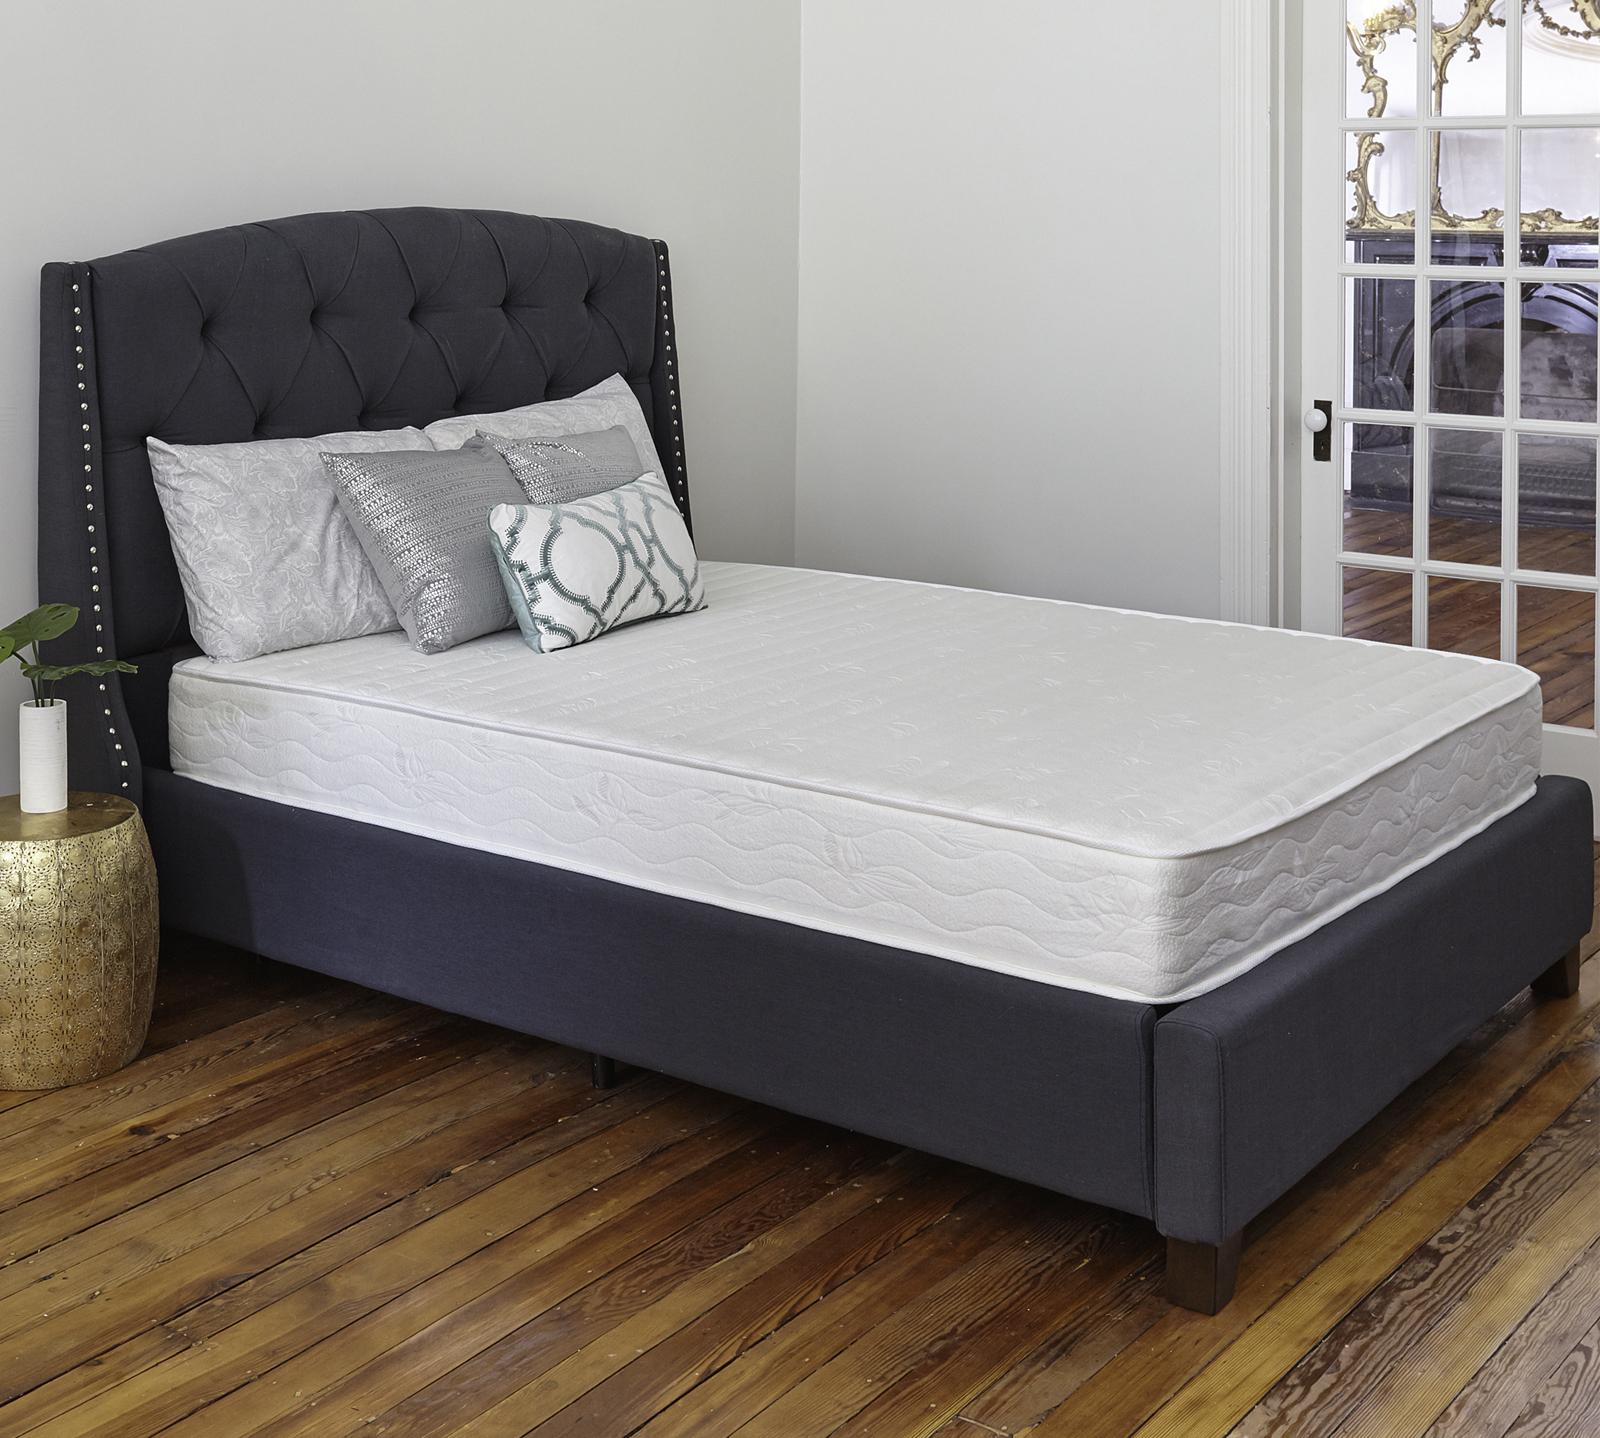 Cheap Sofa Beds Perth Perth 8 Quot Innerspring Mattress